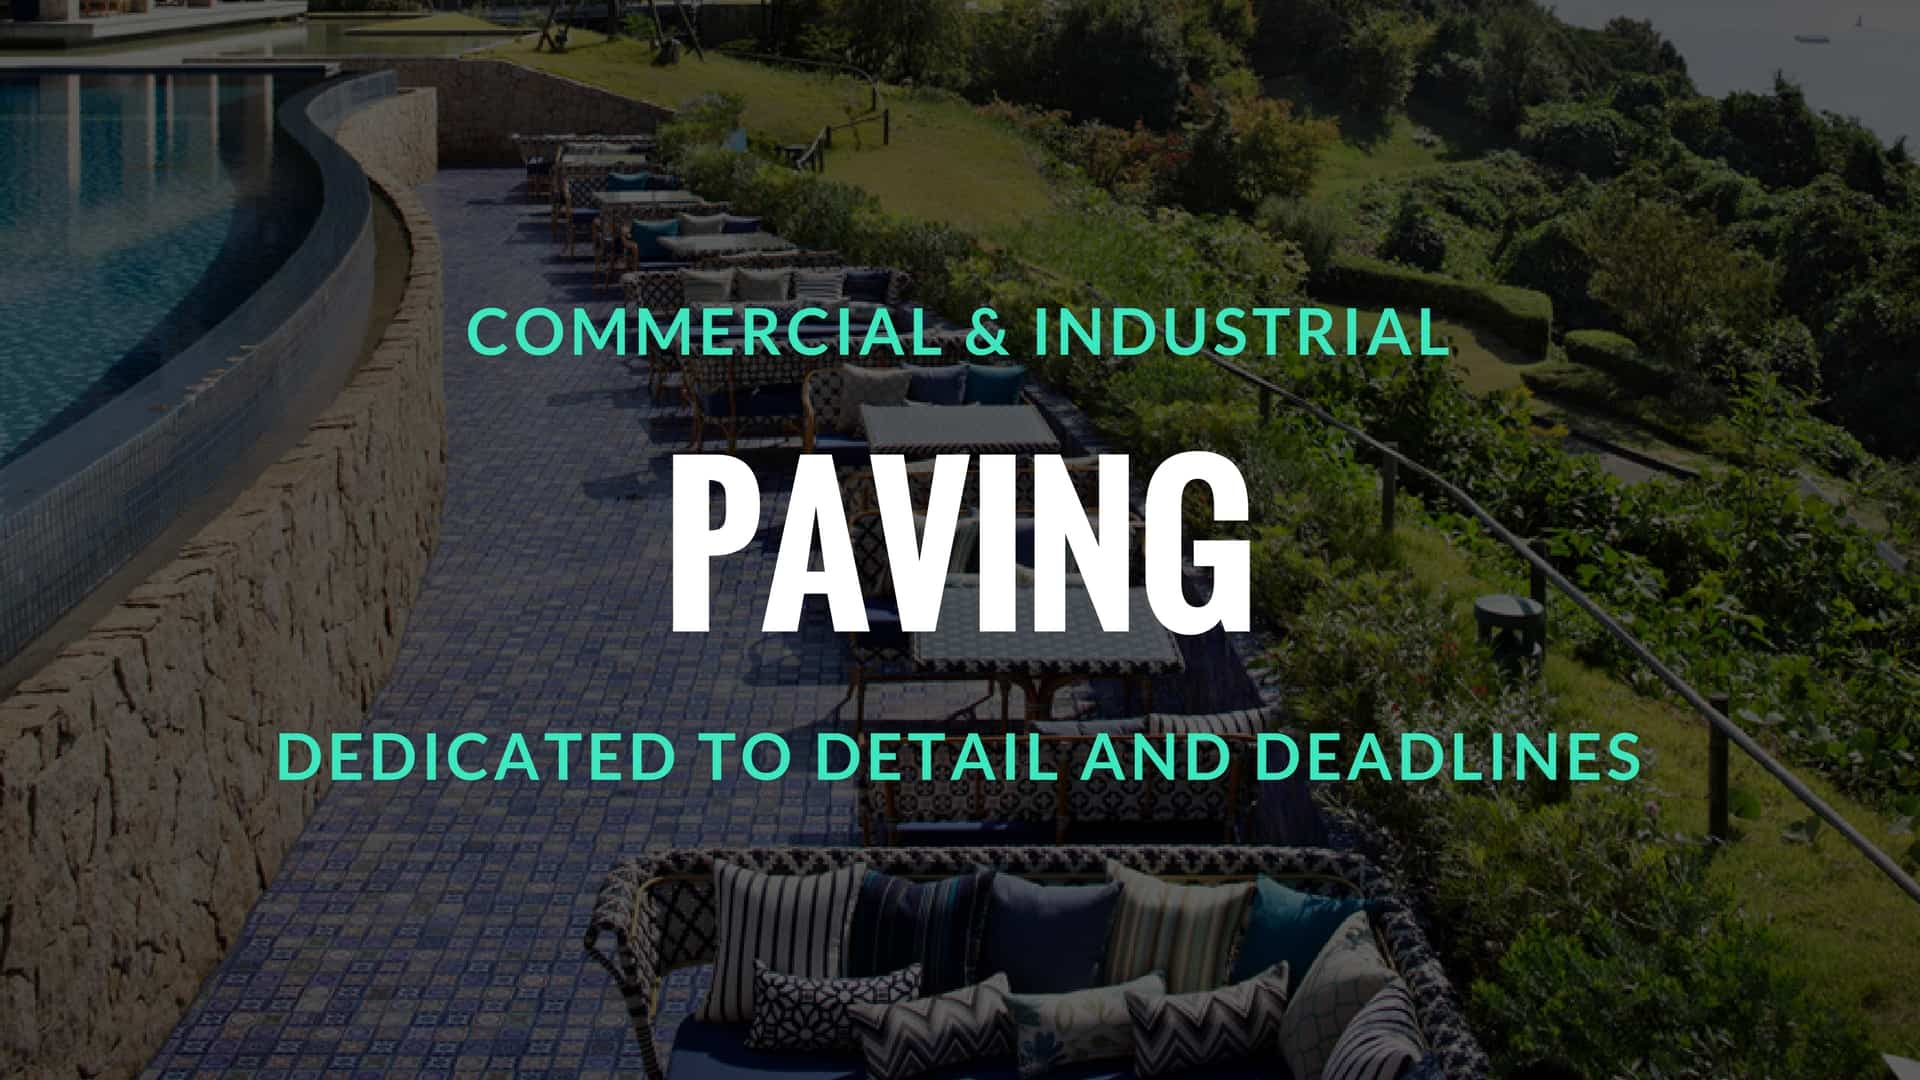 Commercial Paving by SA Paving